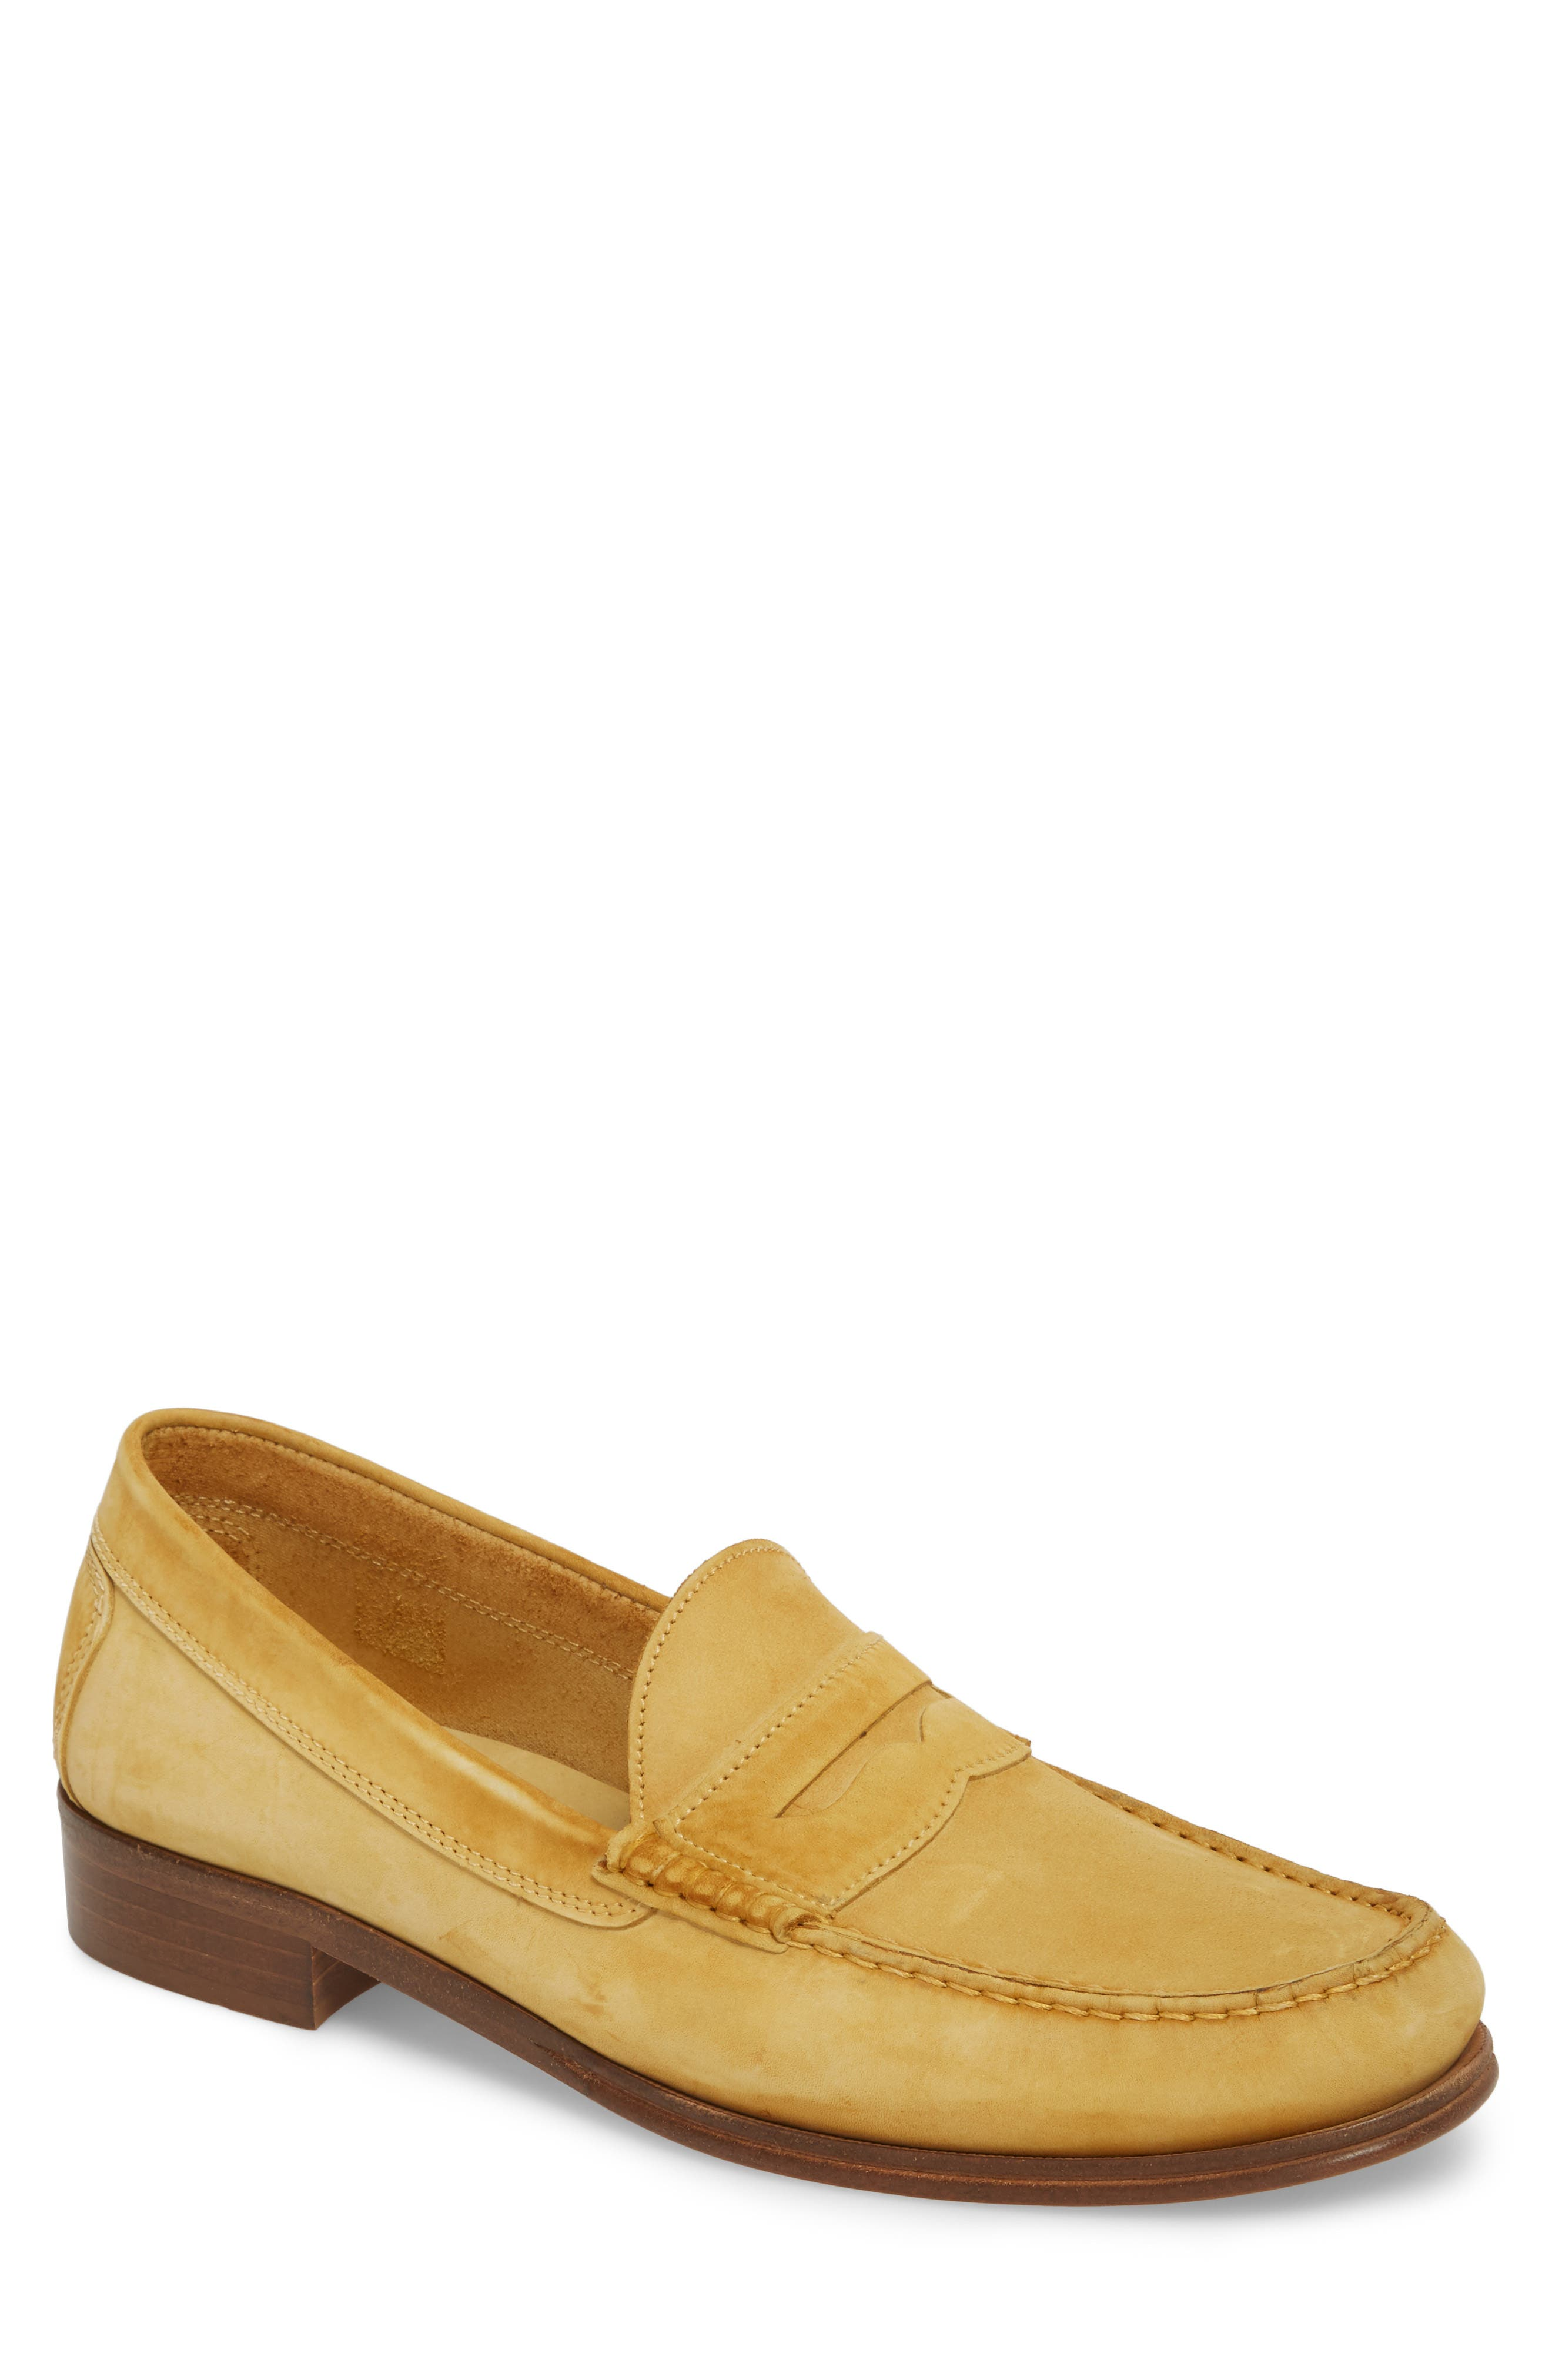 Nicola Penny Loafer,                             Main thumbnail 3, color,